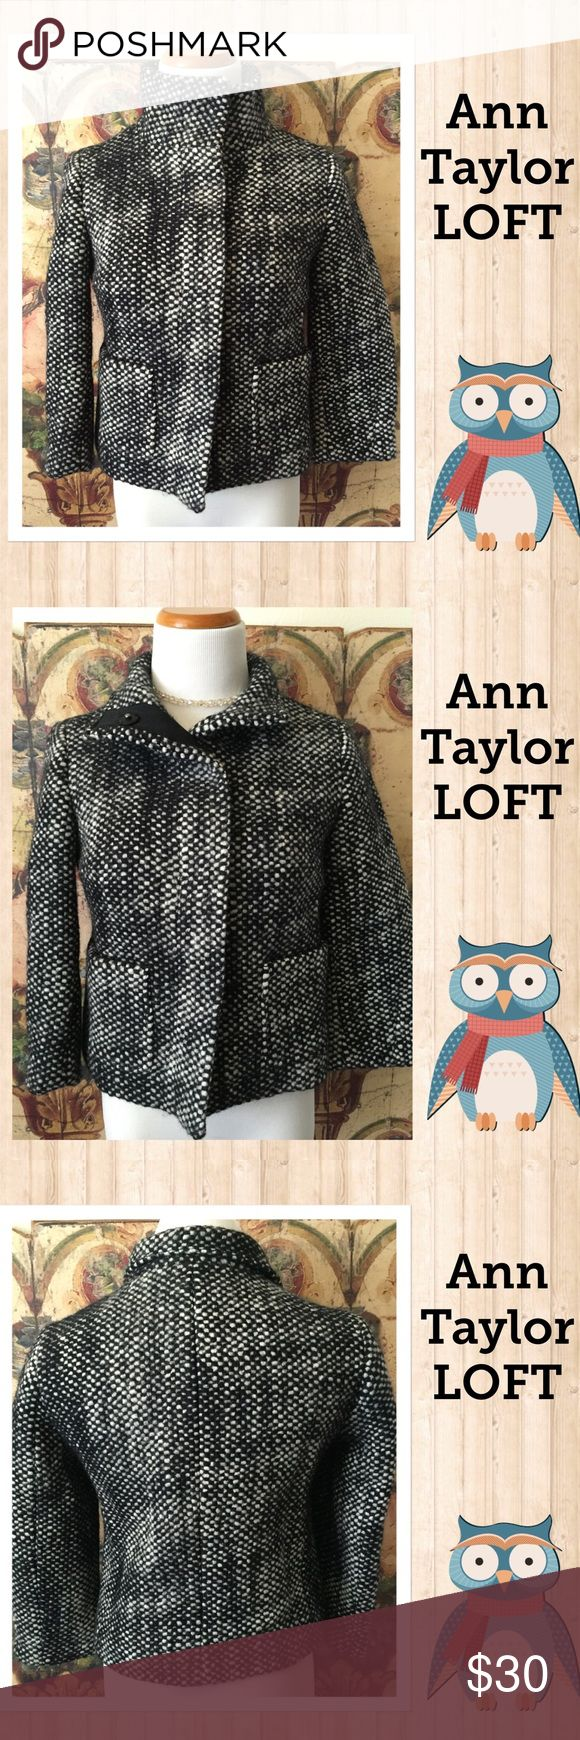 Ann Taylor LOFT extra small petite coat Made by Ann Taylor LOFT this is an extra small petite coat. Has front pockets, a collar that can go up or down, and easy snap closures. Made of wool, acetate, nylon and polyester. No flaws found LOFT Jackets & Coats